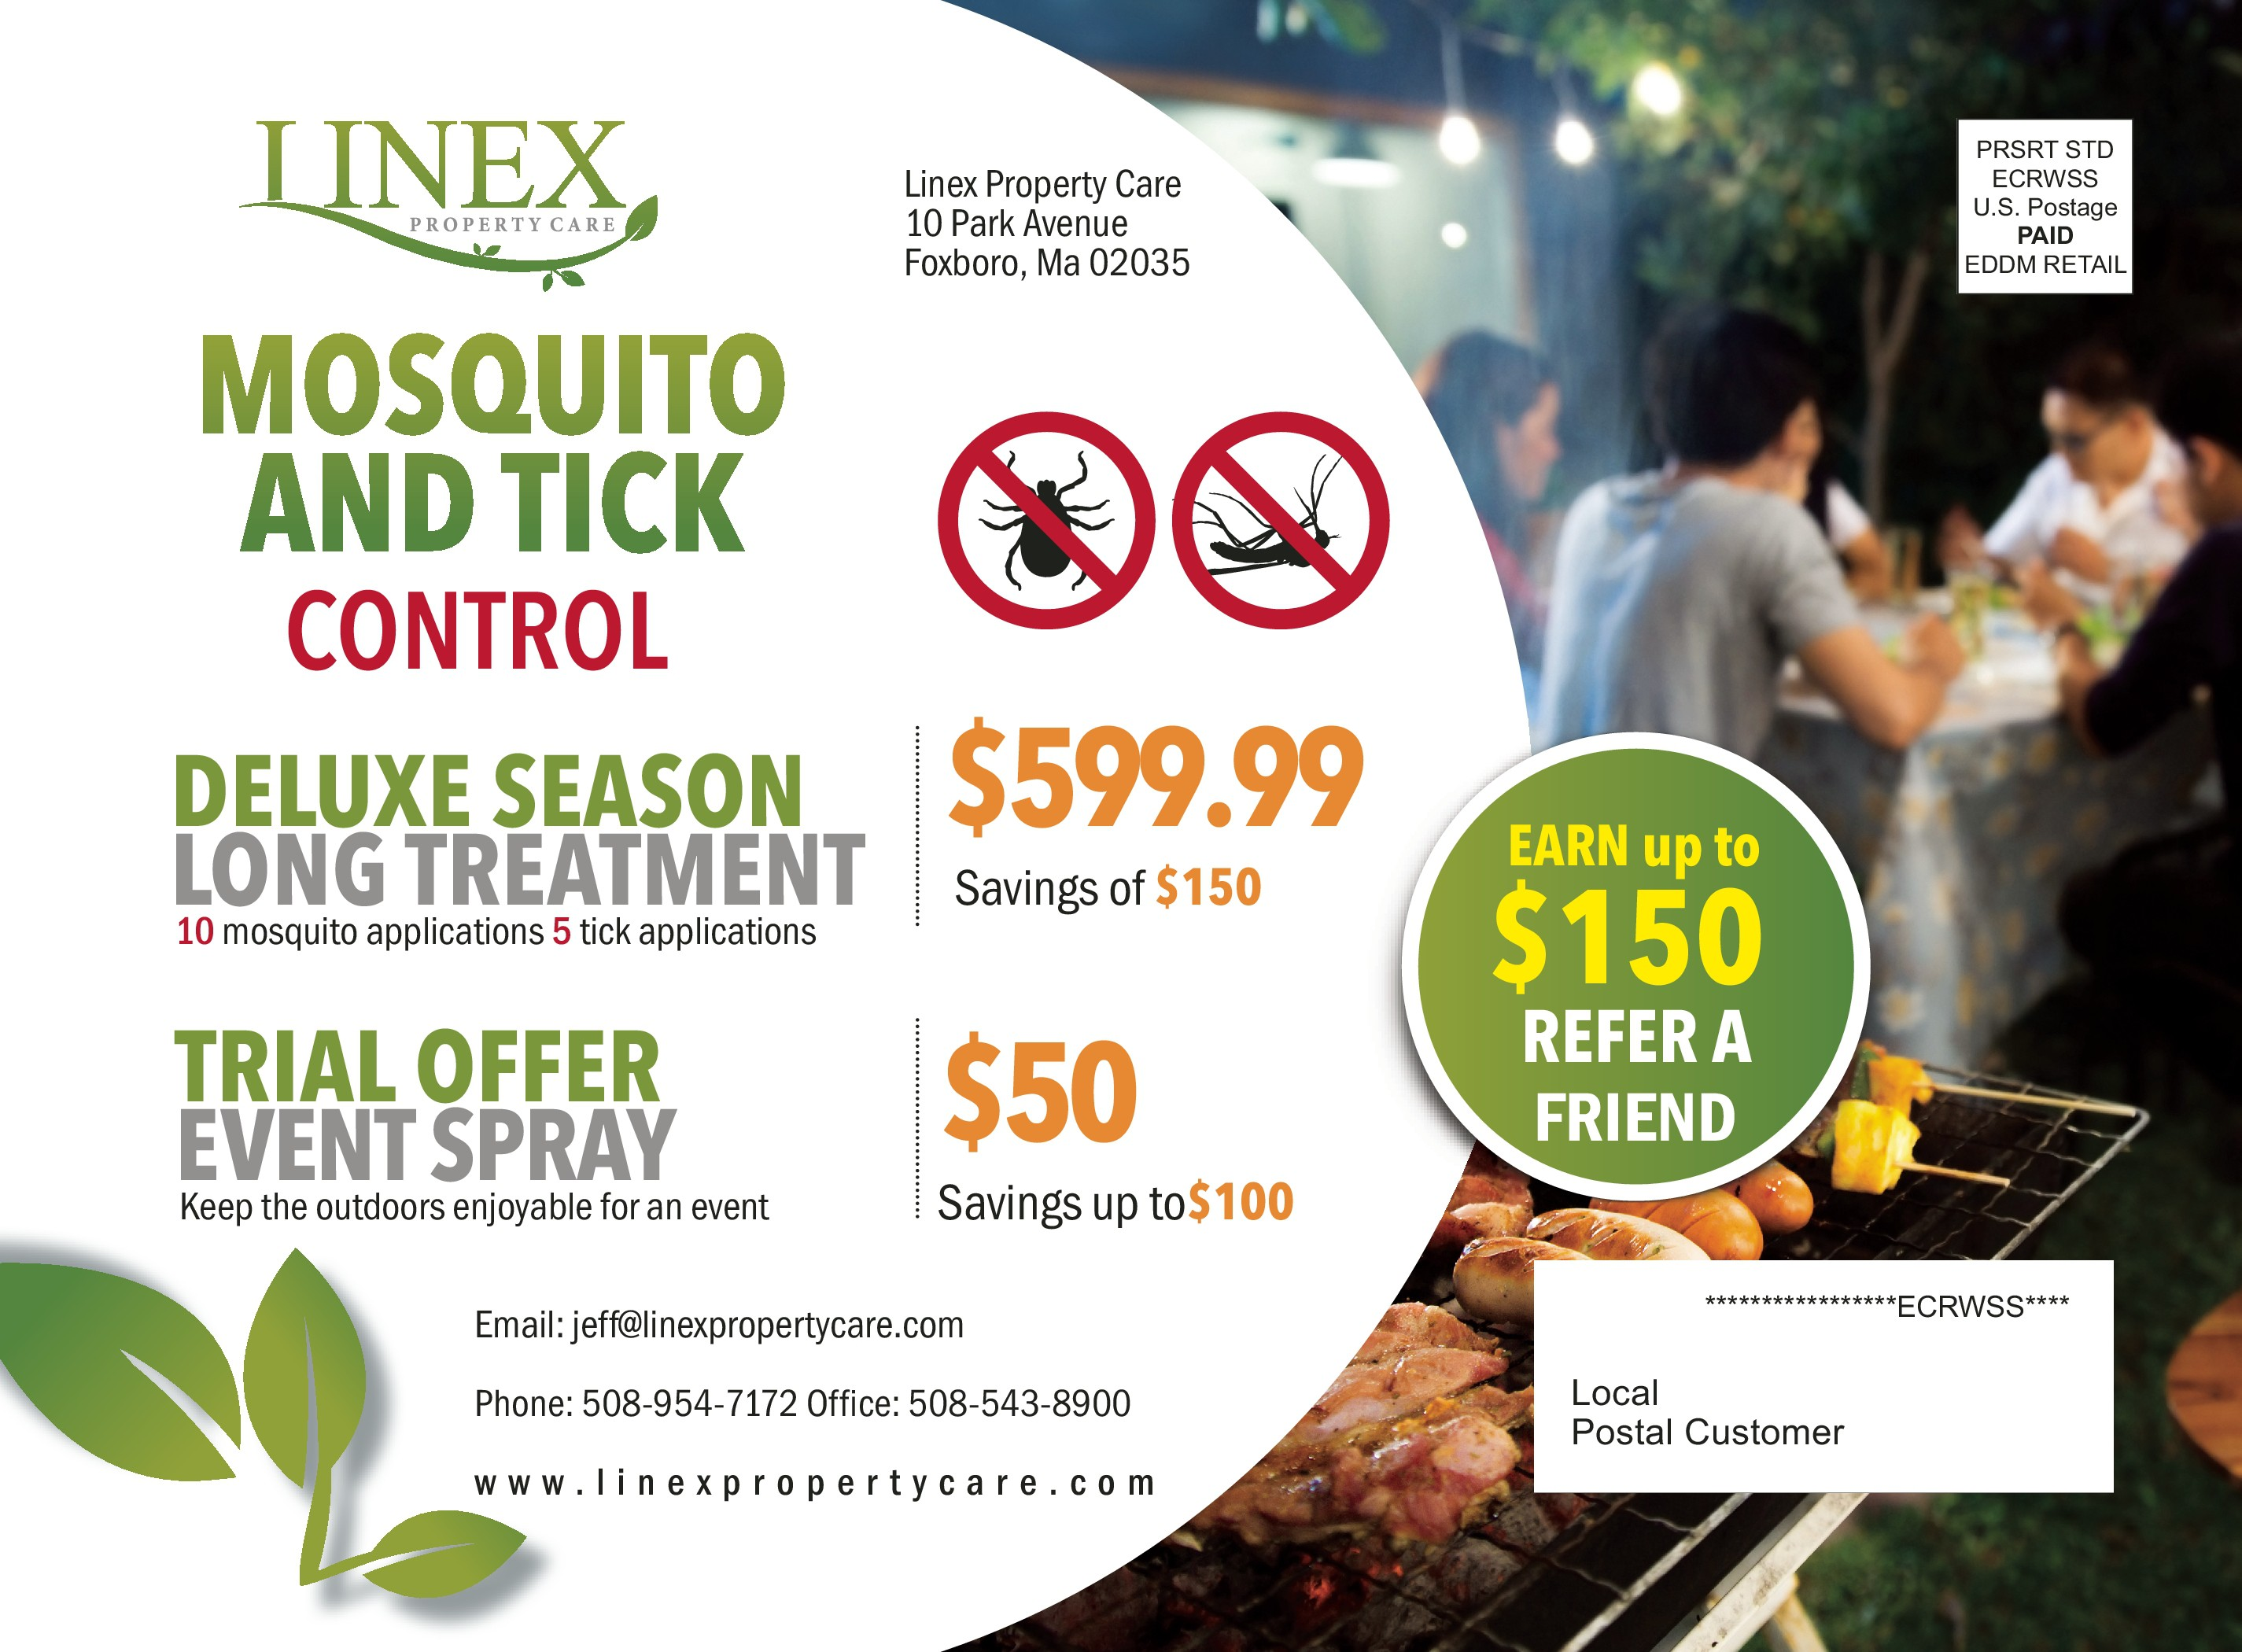 Lawn Care/ Mosquito Control Postcard . Must be EDDM READY TO PRINT